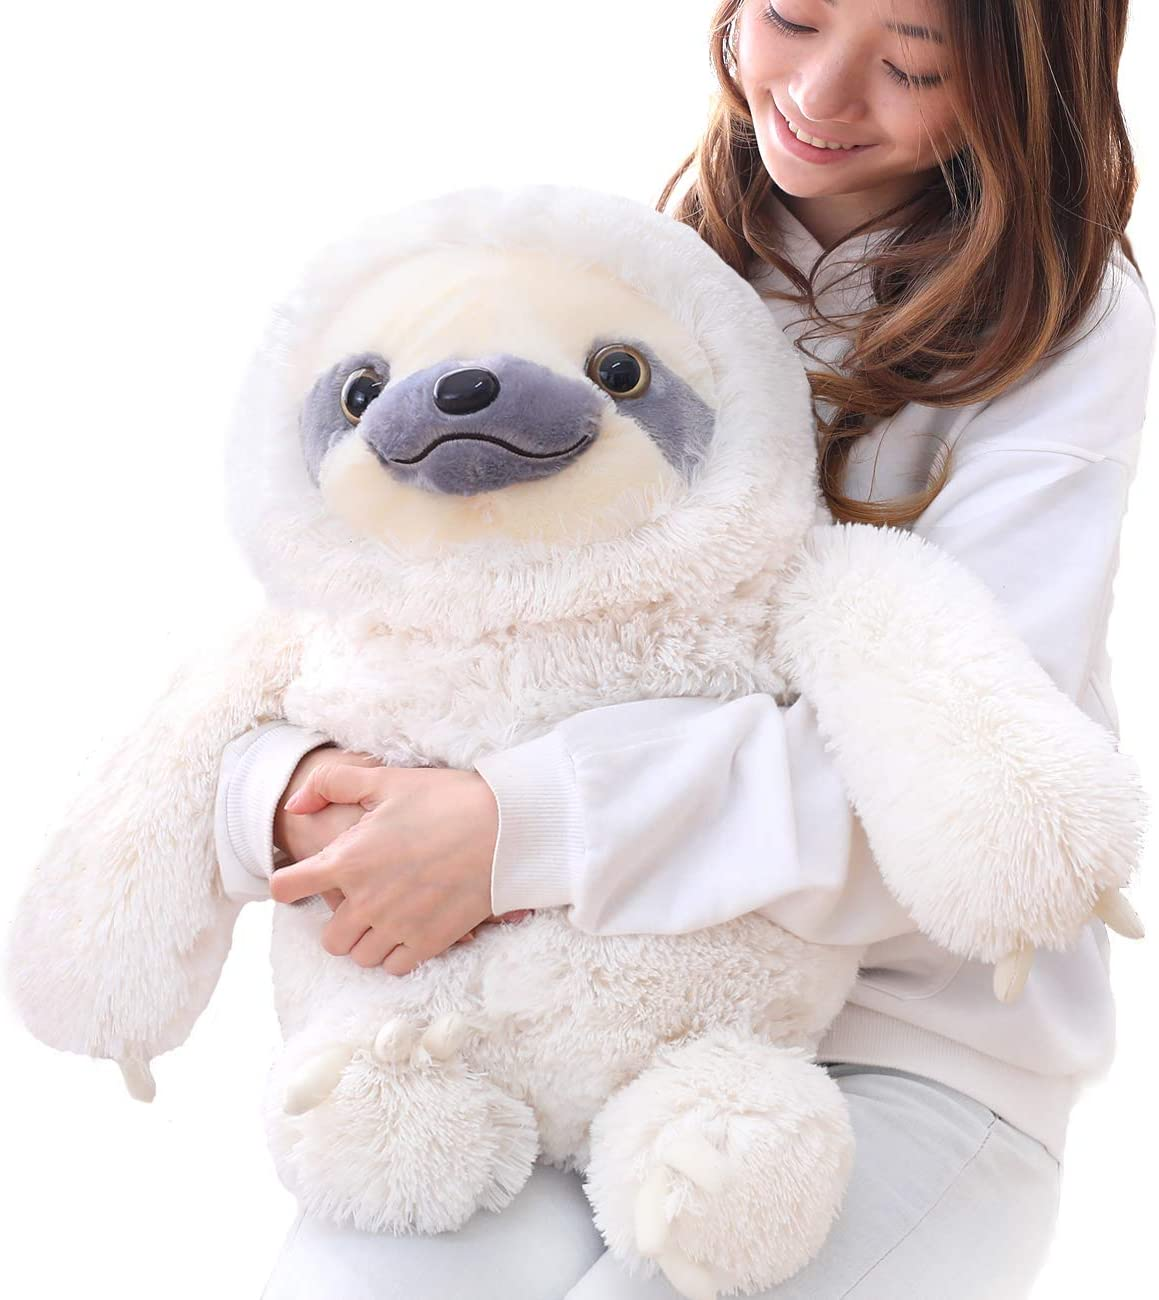 Cuddly Sloth Soft Plush Toy Large Stuffed Animal